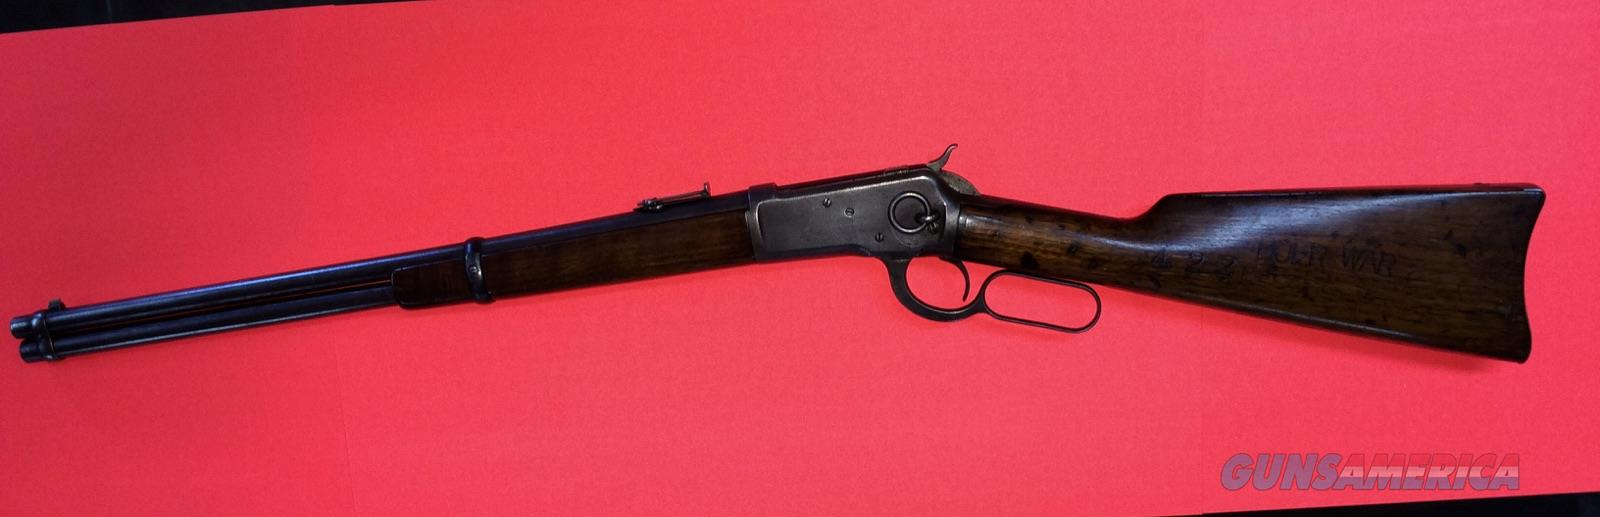 VERY NICE WINCHESTER 1892 {MFG 1894 SADDLE RING CARBINE .44WCF}  Guns > Rifles > Winchester Rifles - Pre-1899 Lever